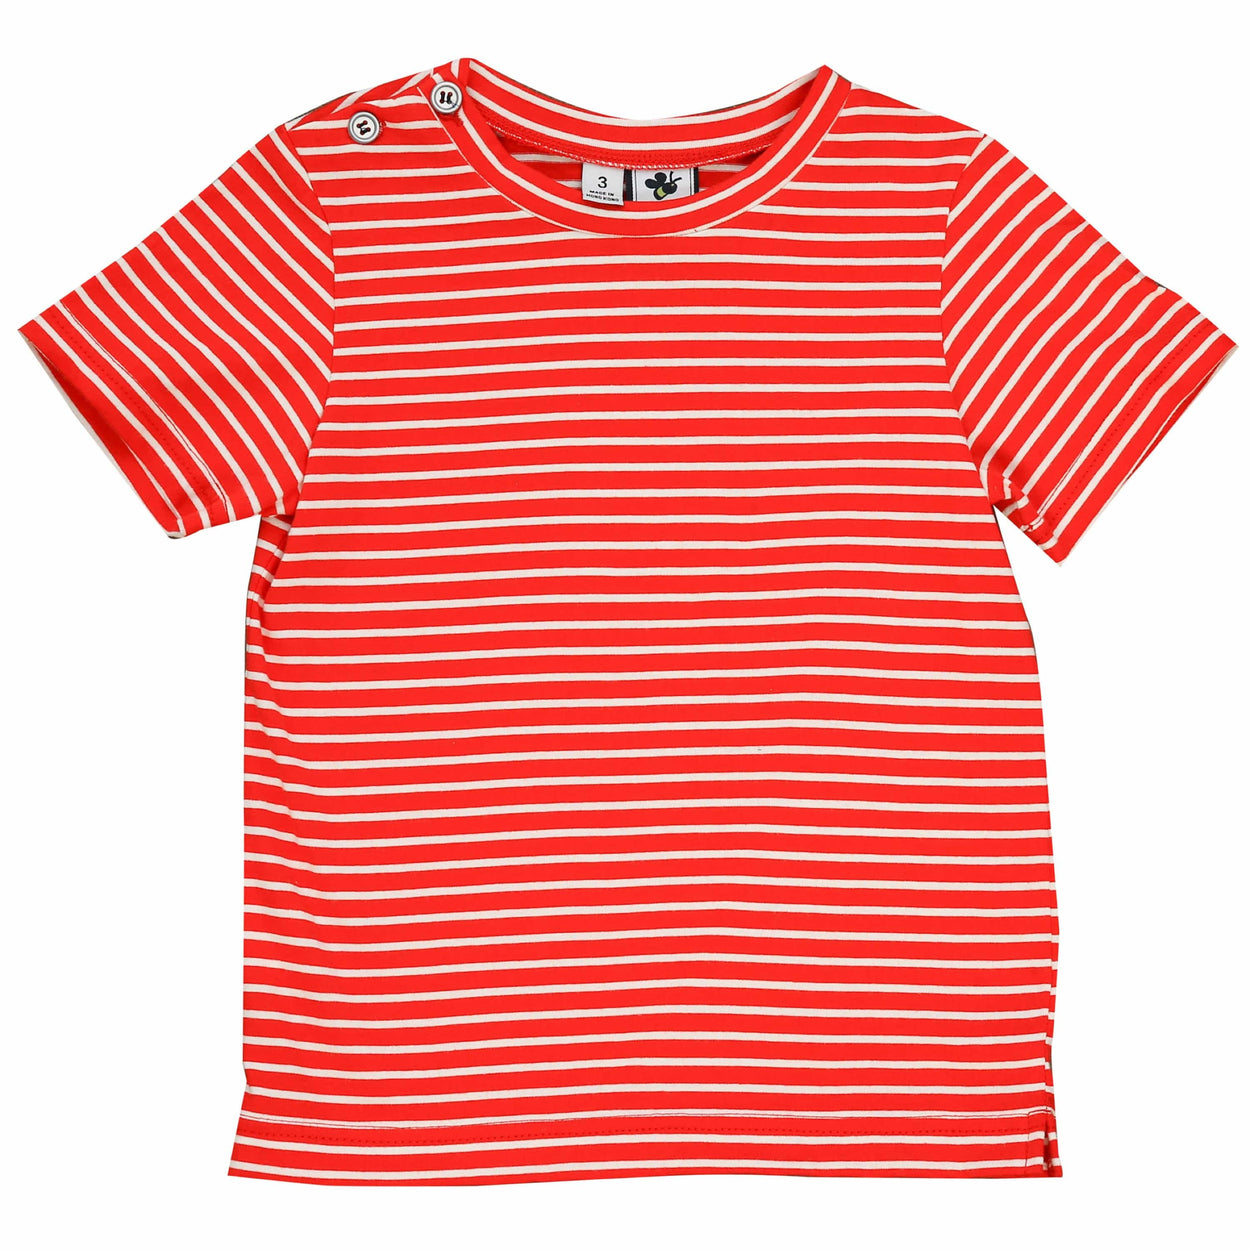 henry boys button tee red stripe knit